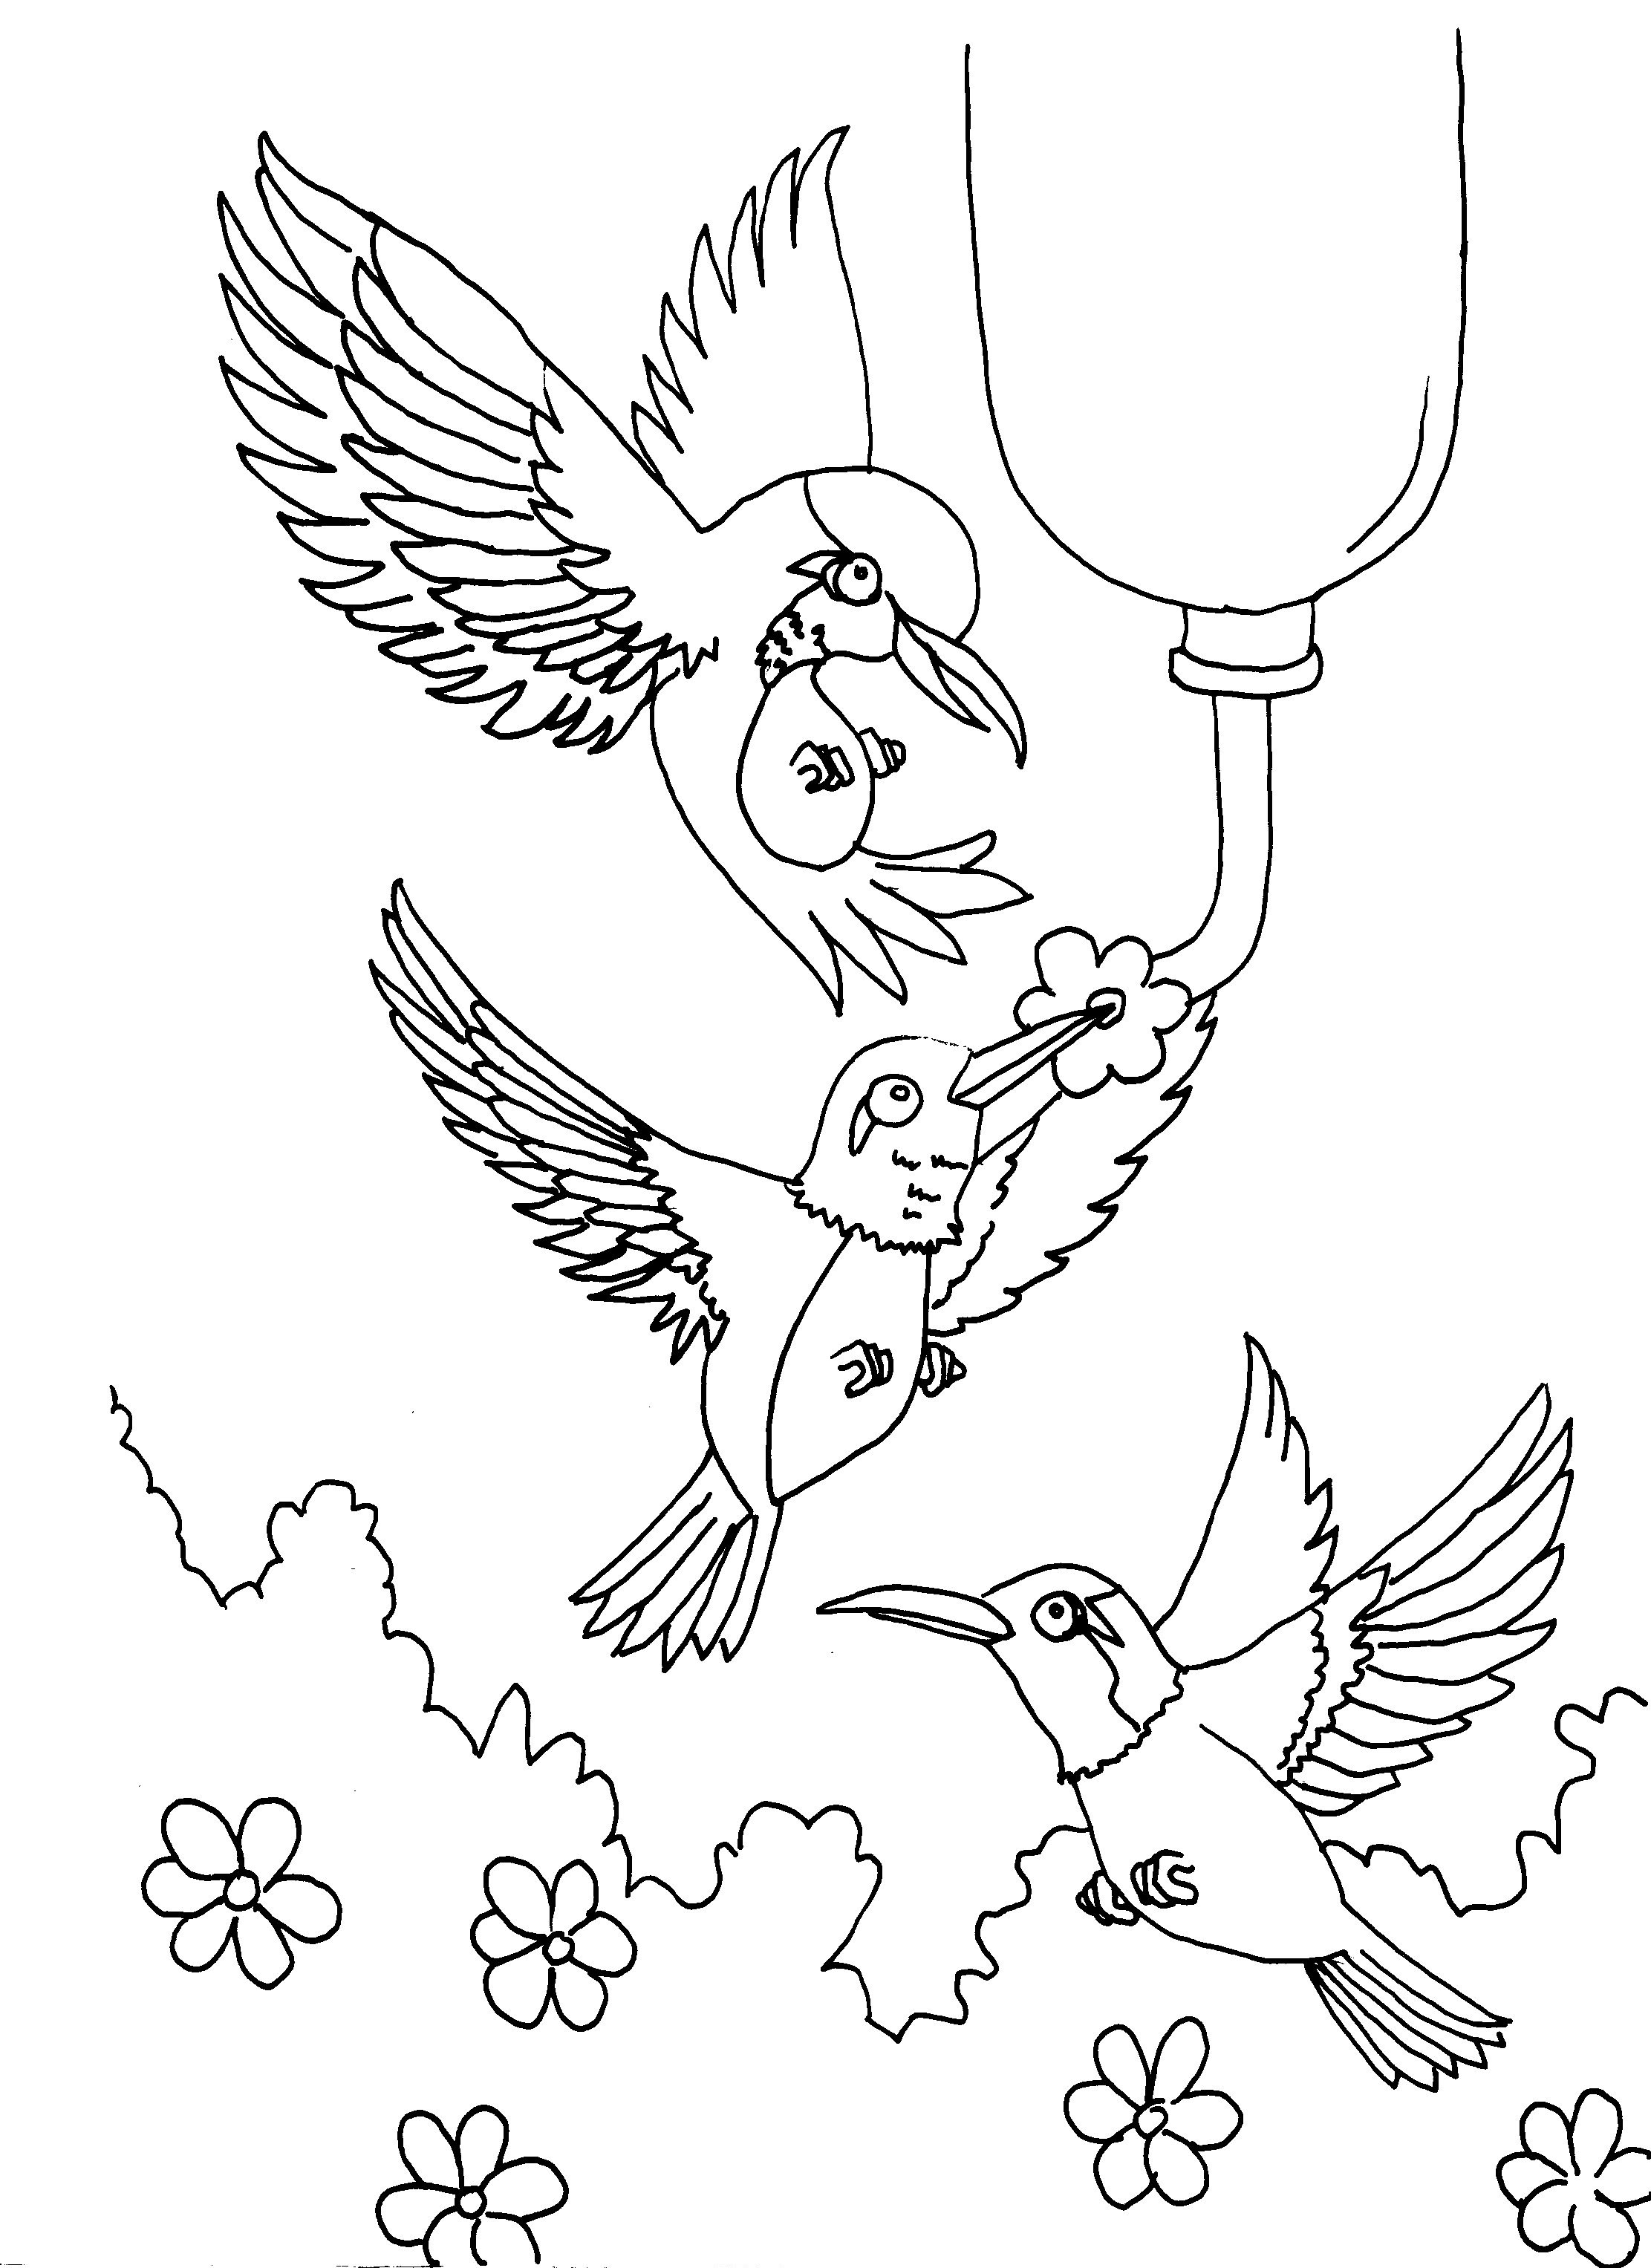 printable images of birds free printable hummingbird coloring pages for kids printable birds of images